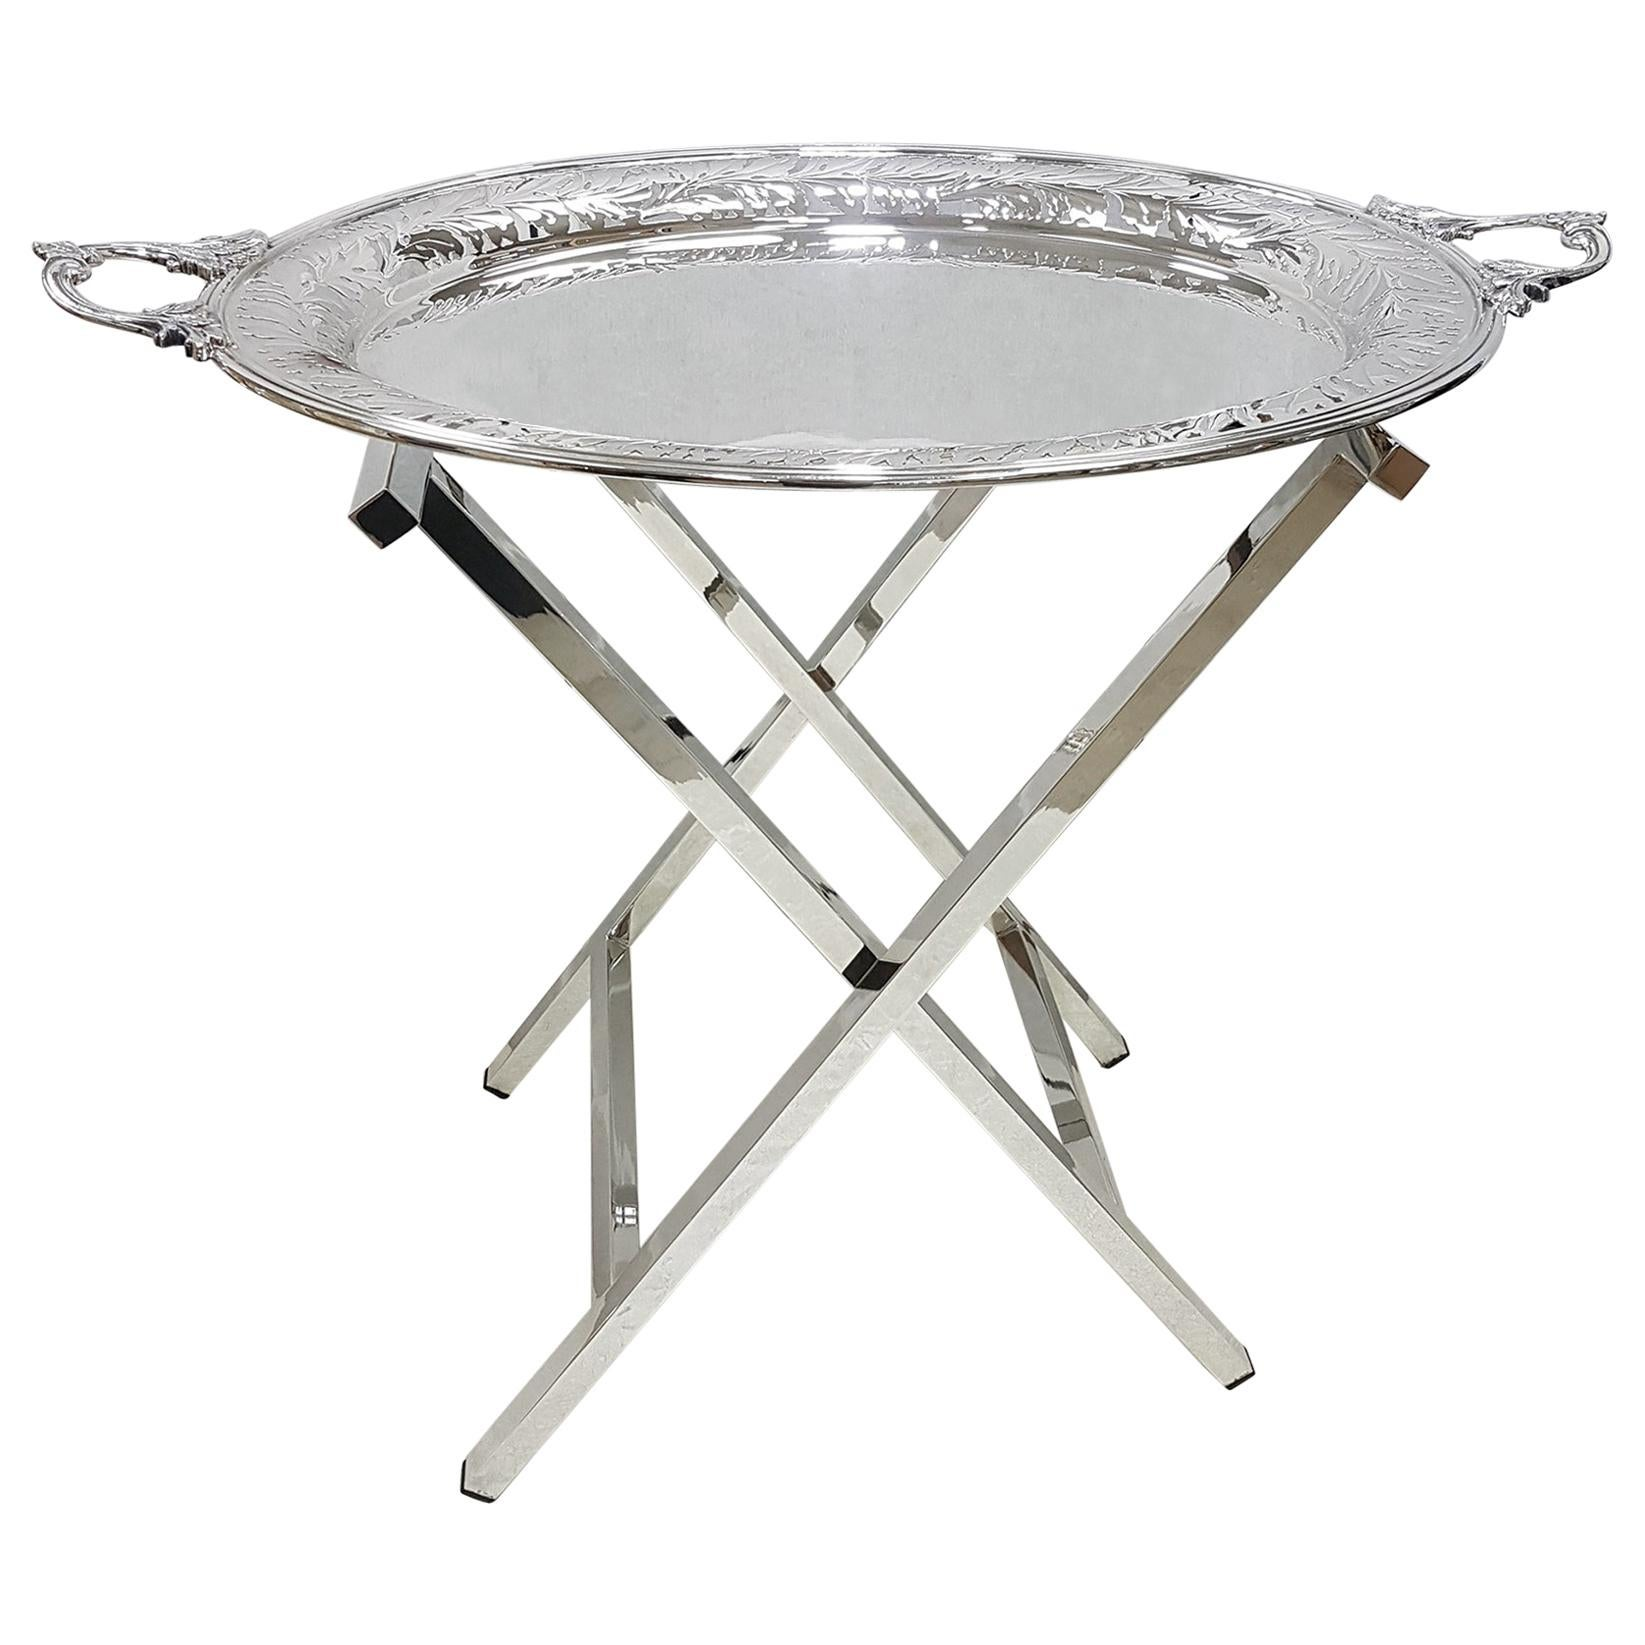 20th Century Italian Solid Silver Tray on Silver Stand